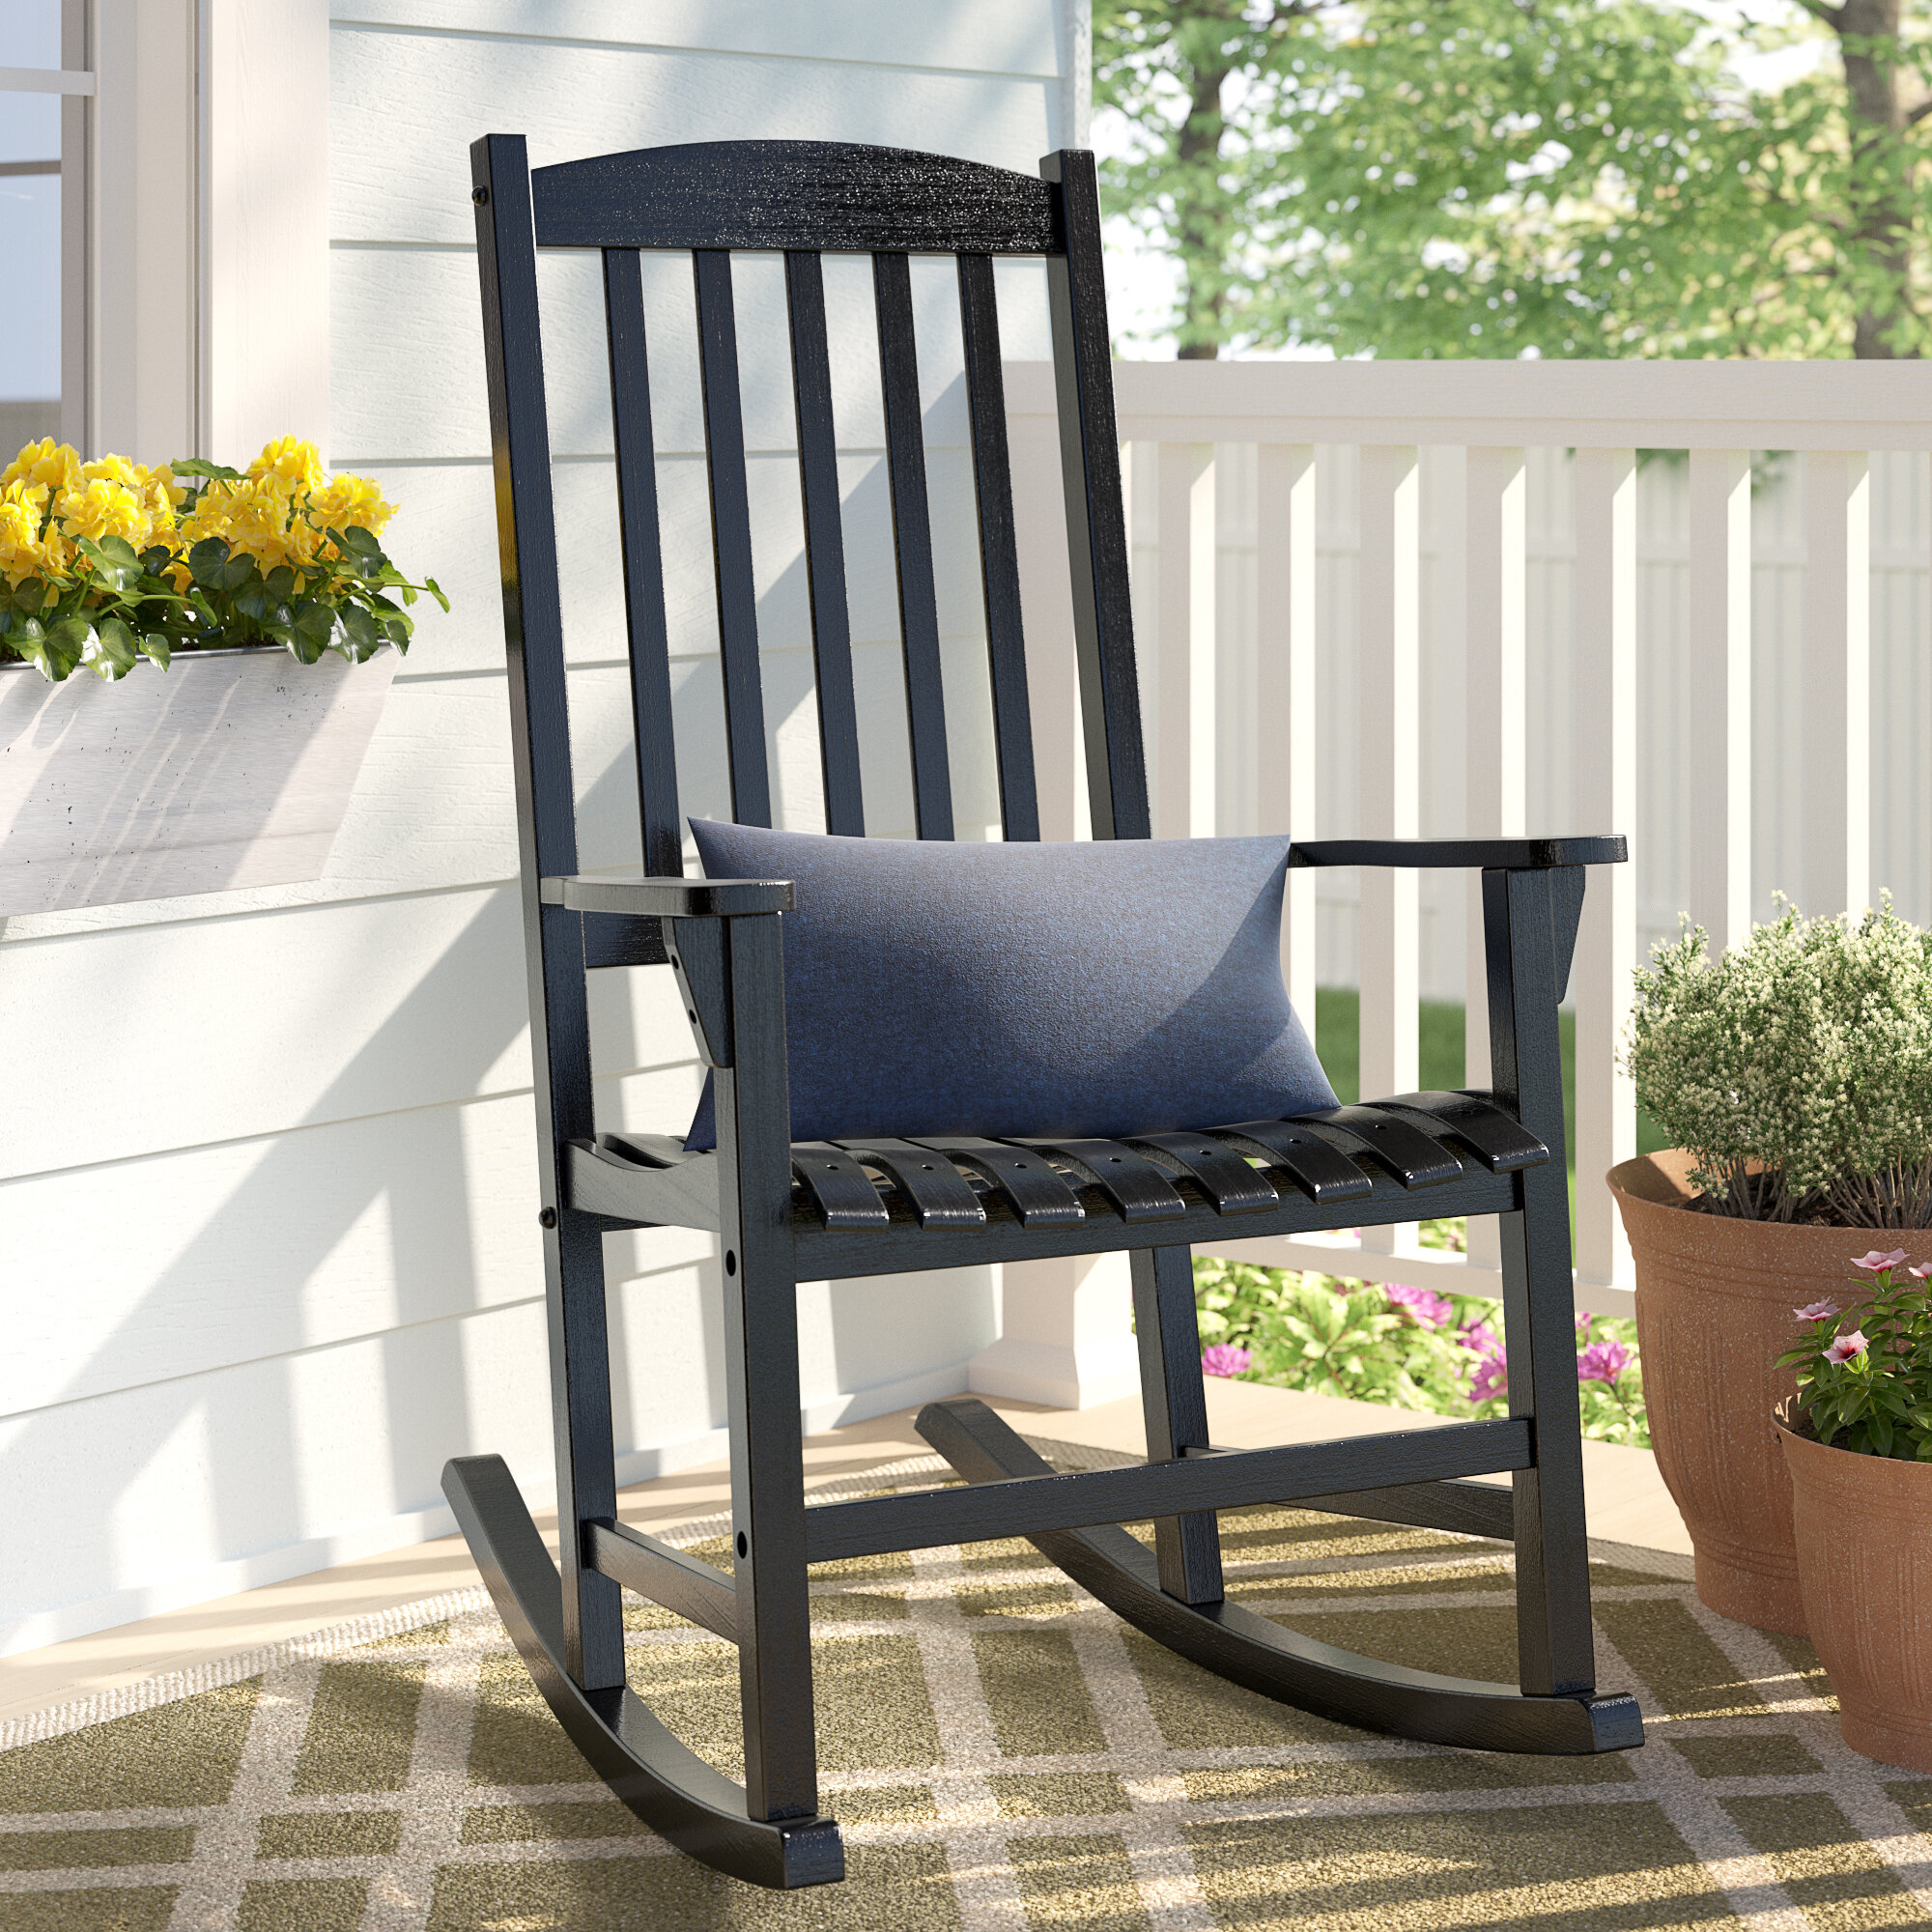 Marvelous Abasi Porch Rocker Chair Ibusinesslaw Wood Chair Design Ideas Ibusinesslaworg